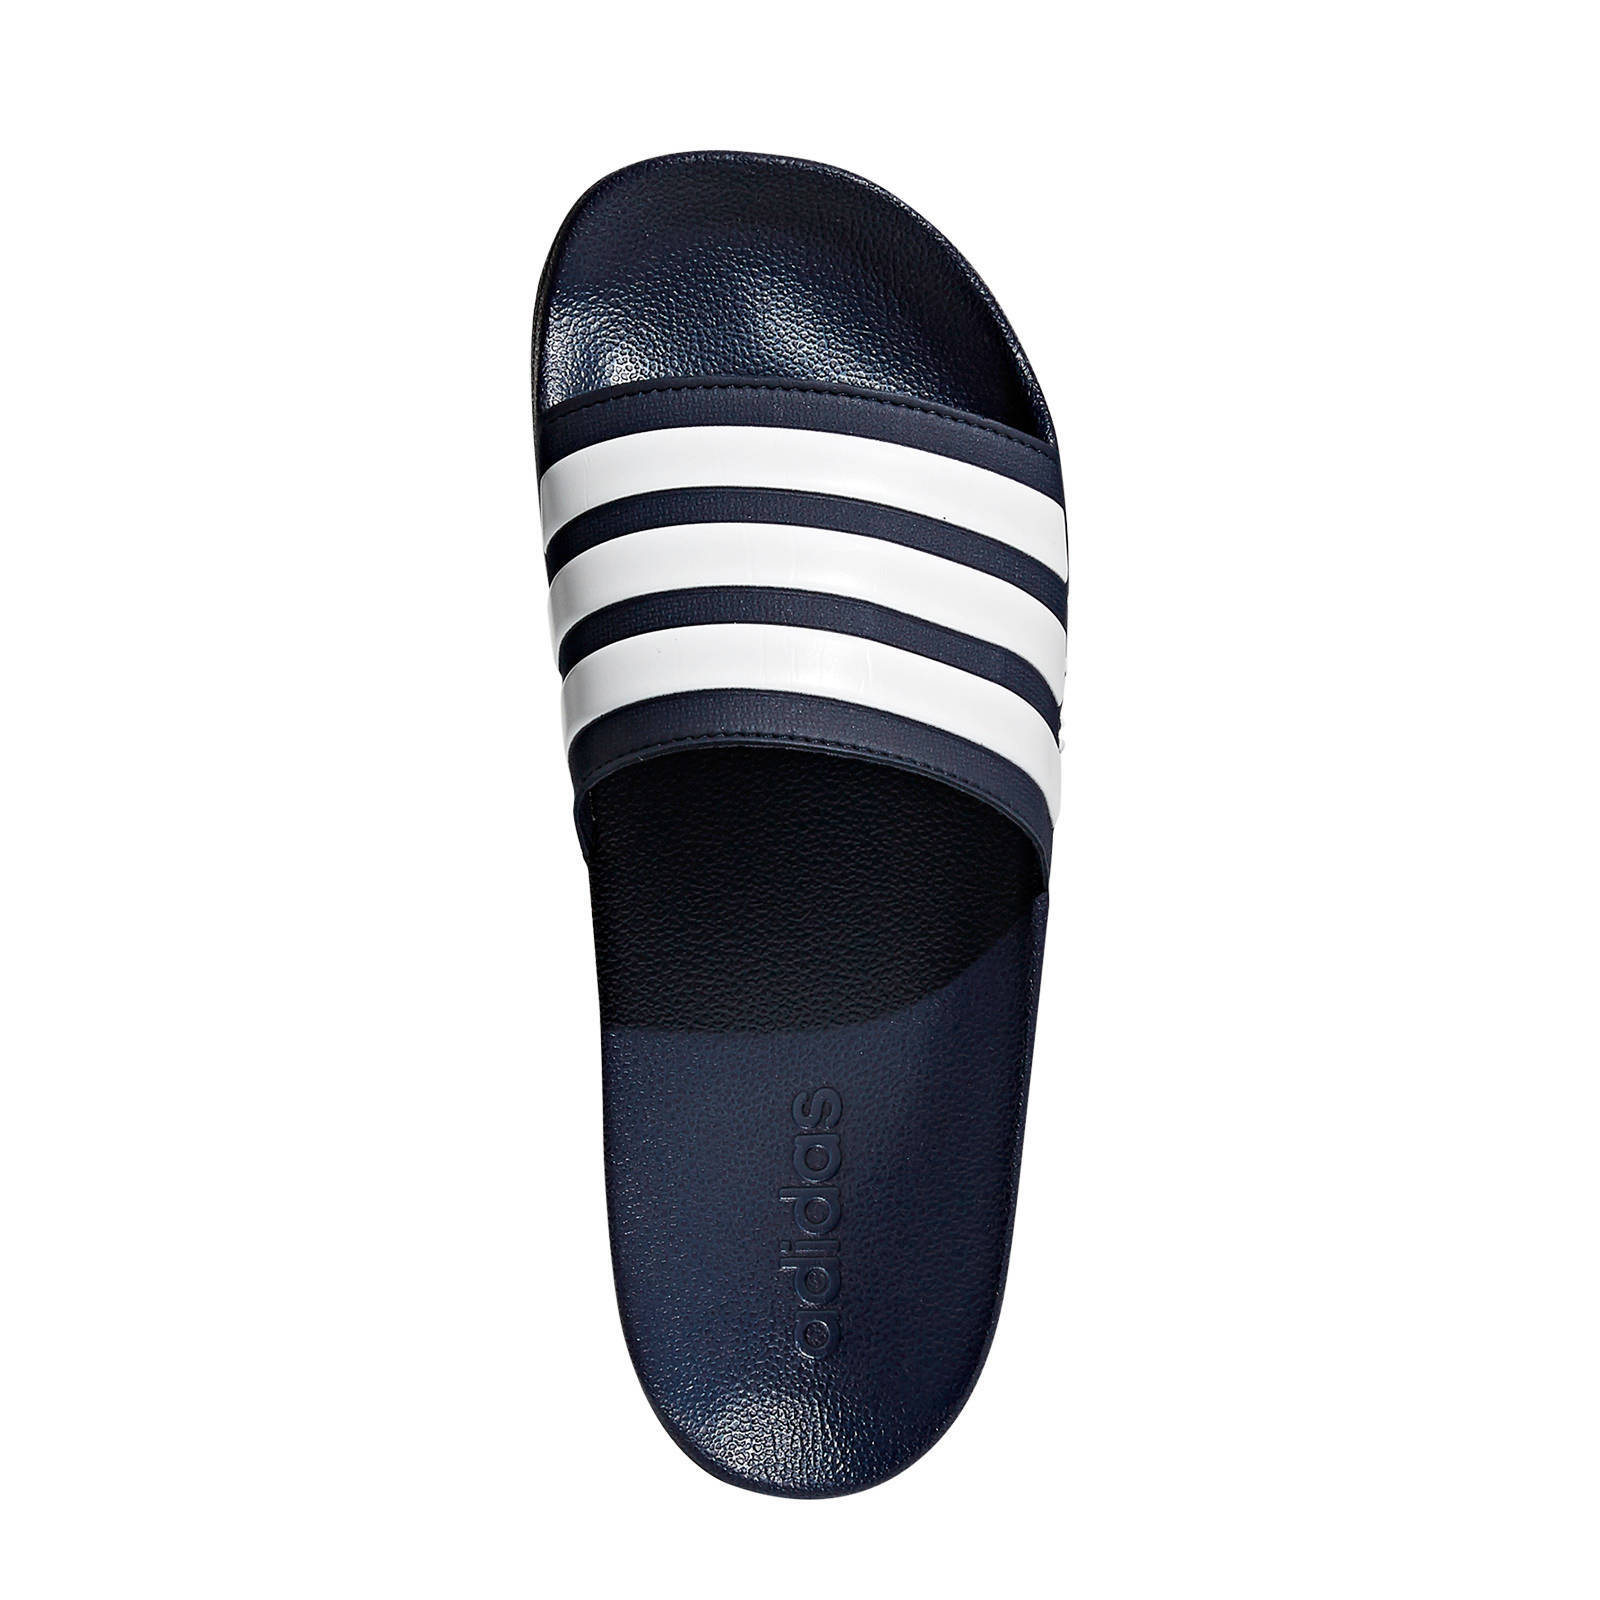 63bb3b4fd0b adidas performance Adilette shower badslippers donkerblauw/wit | wehkamp